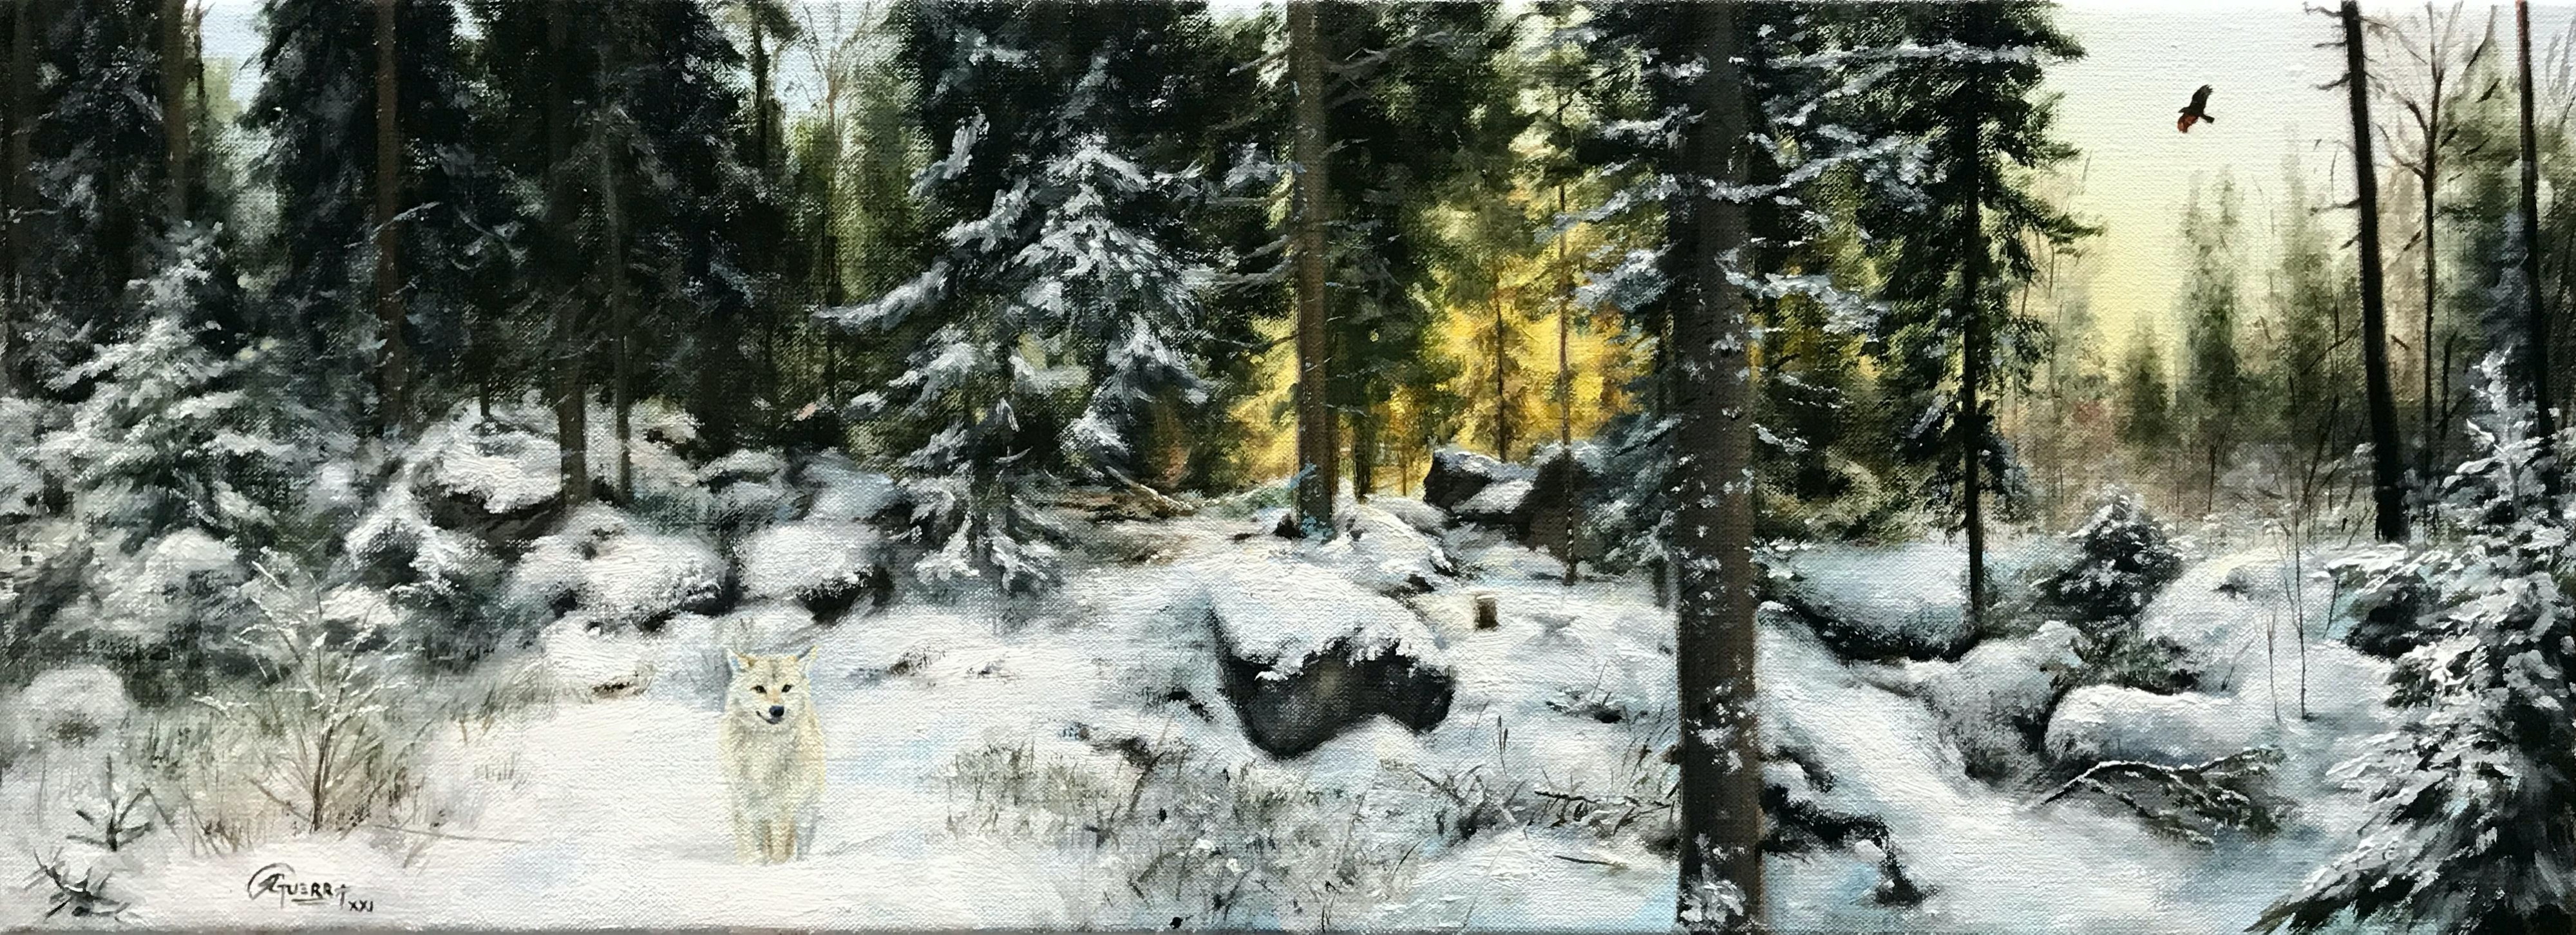 Winter Forest with Wolf and Eagle, Rafael Guerra Painting